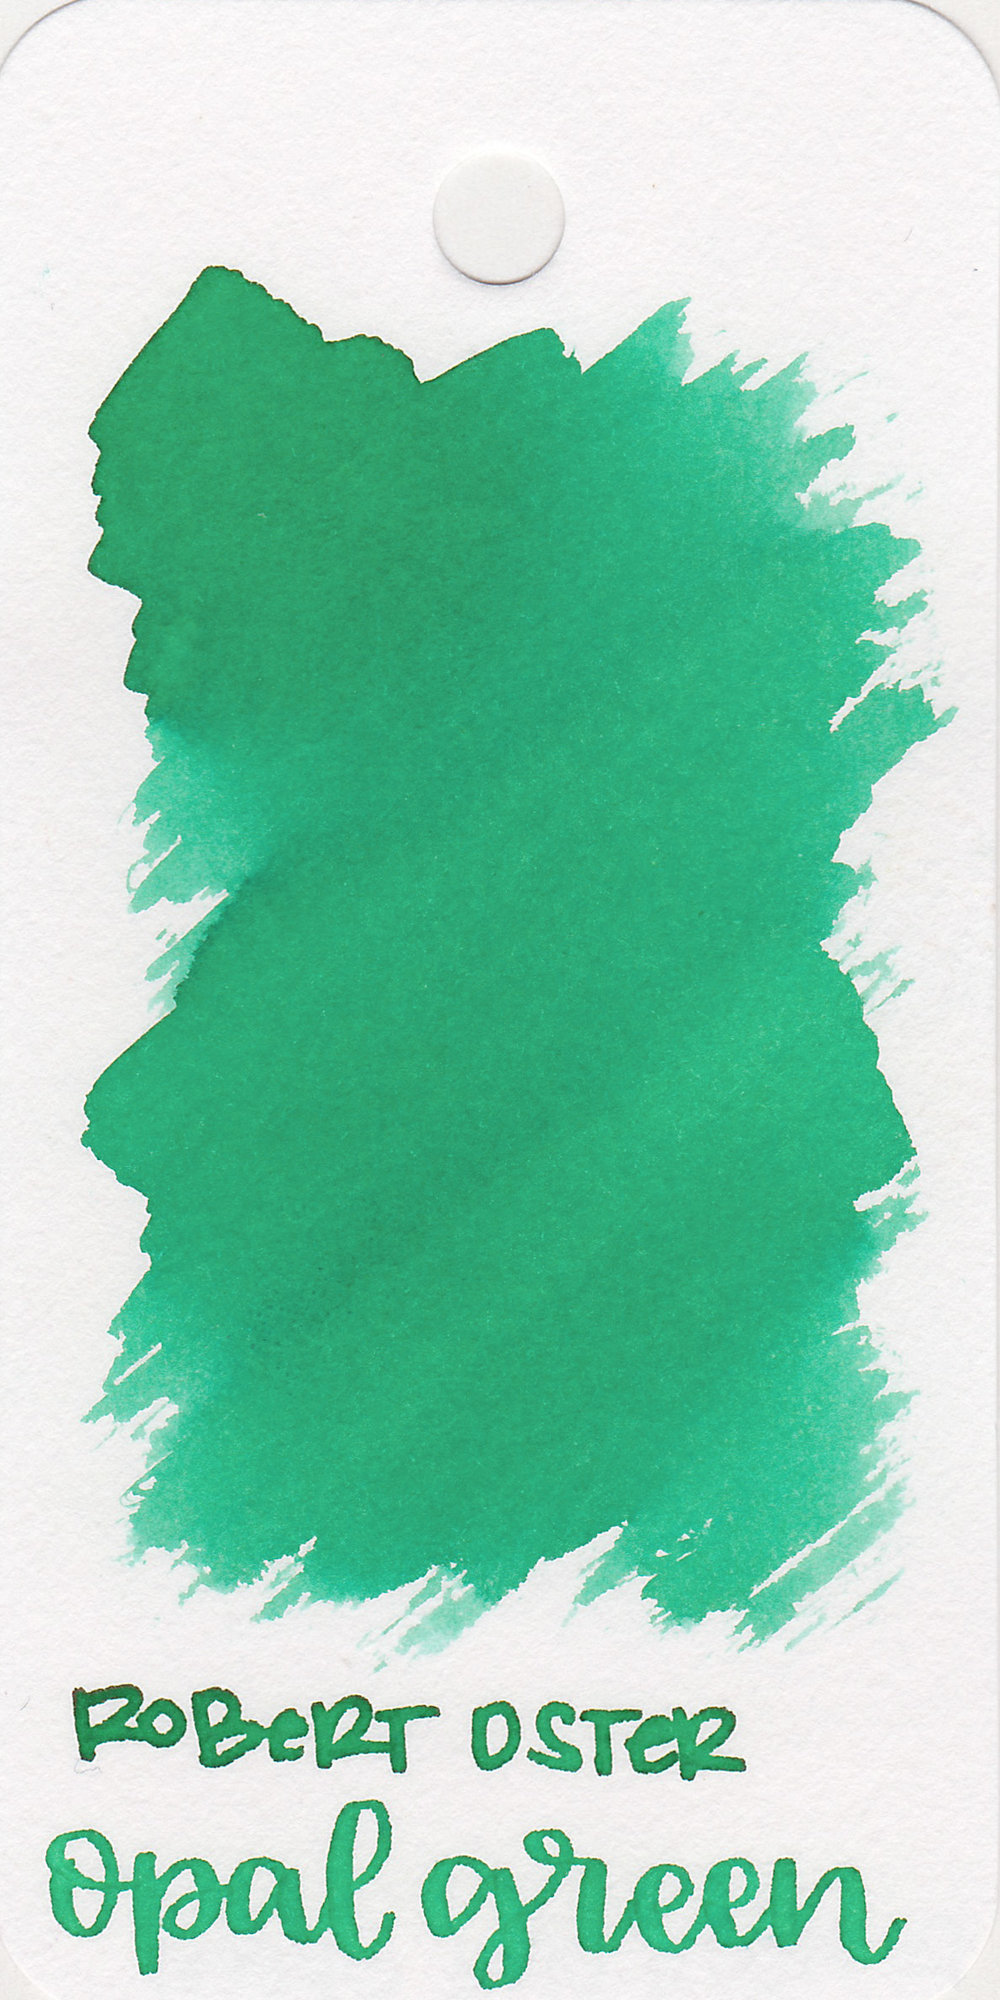 The color: - Opal Green is a medium, pastel green.